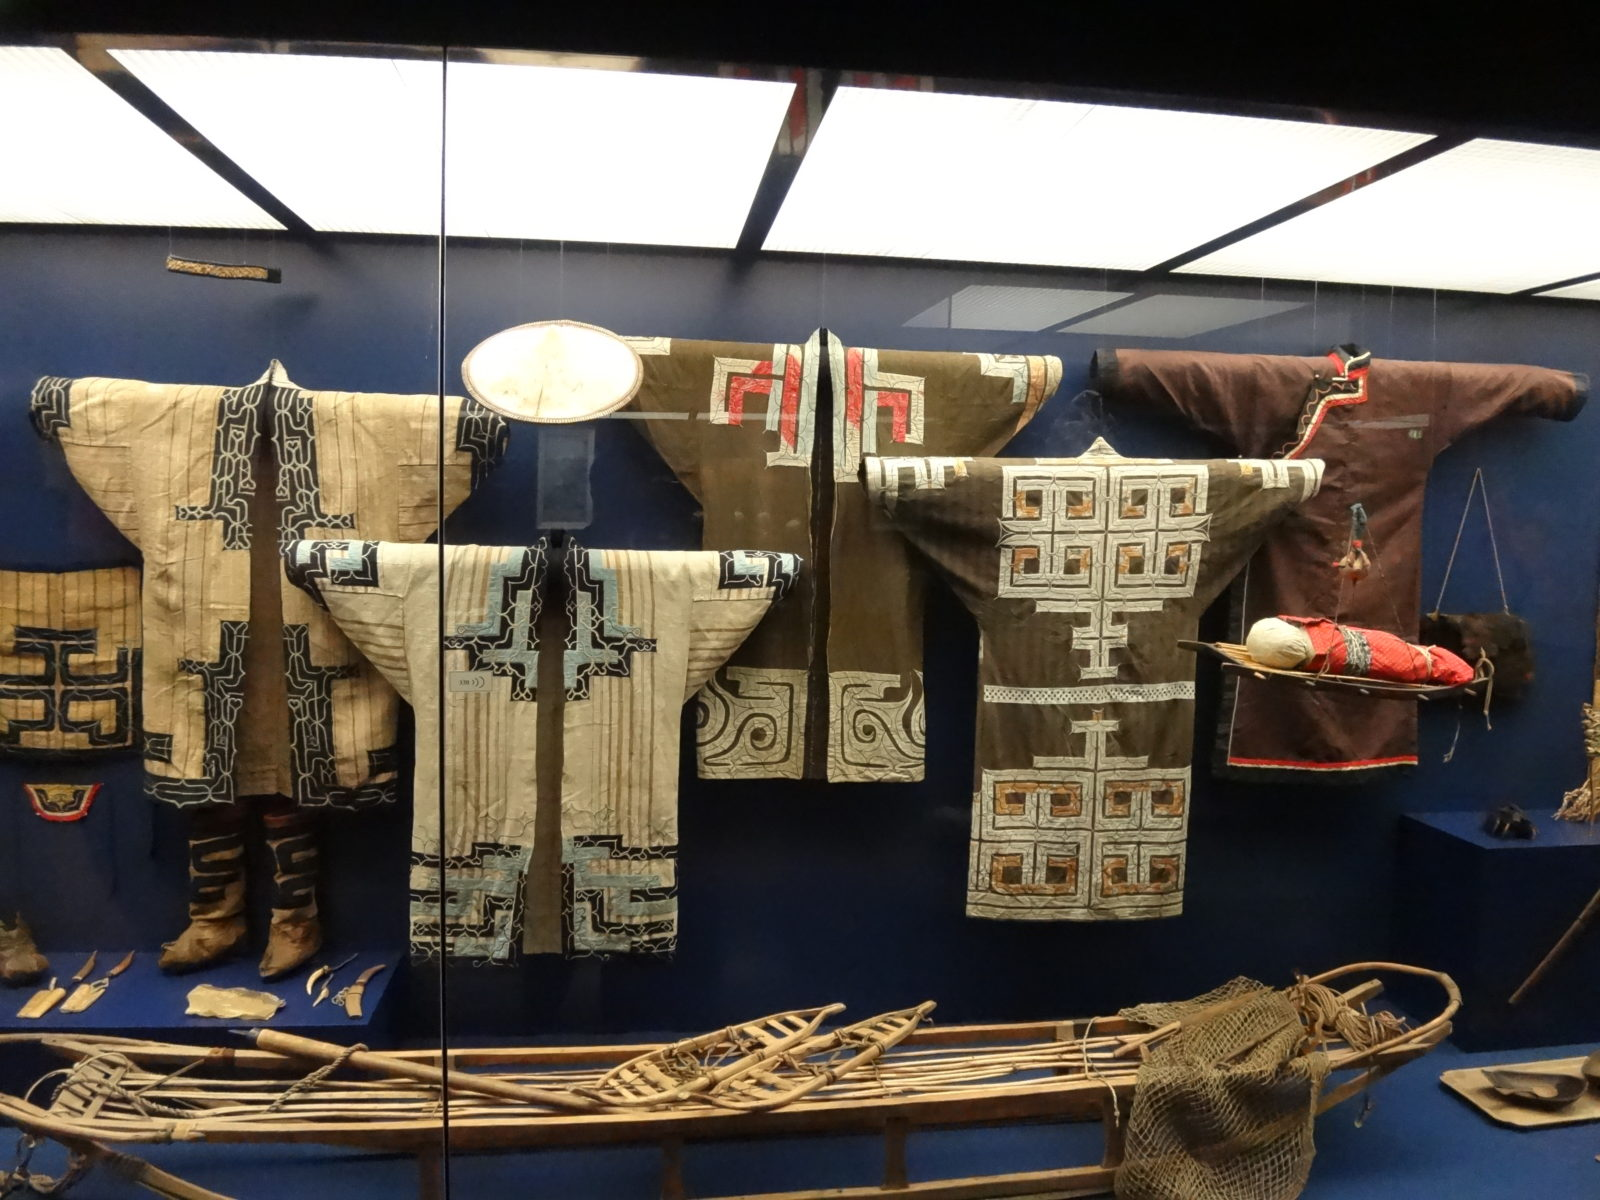 Ainu exhibition at the Leipzig Museum of Ethnology